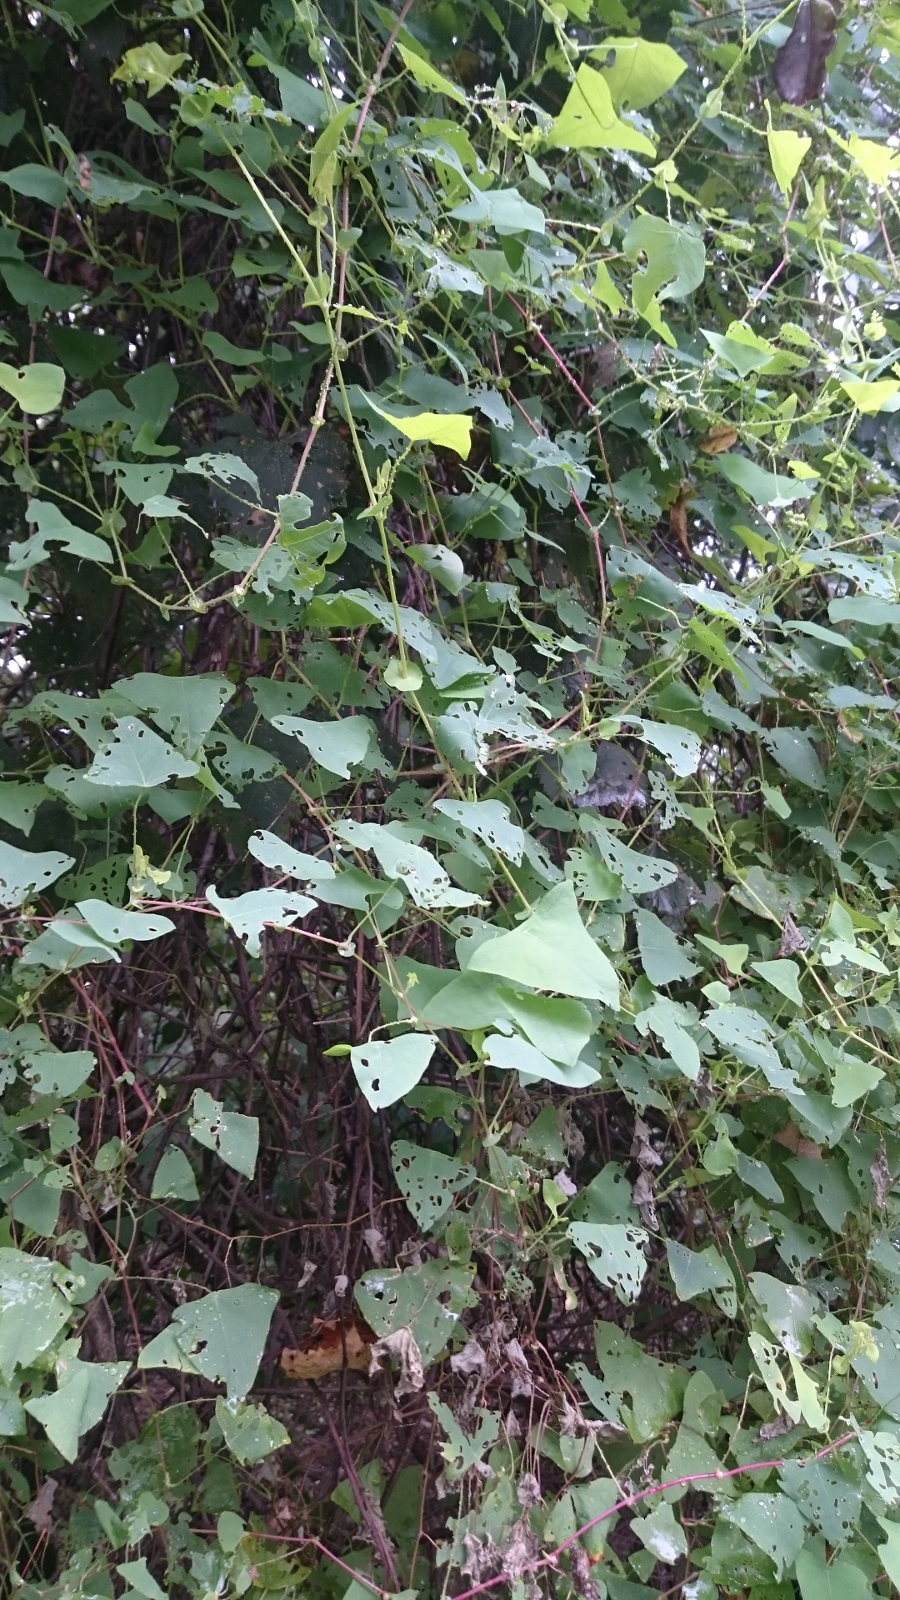 vine with distinctive triangular leaves